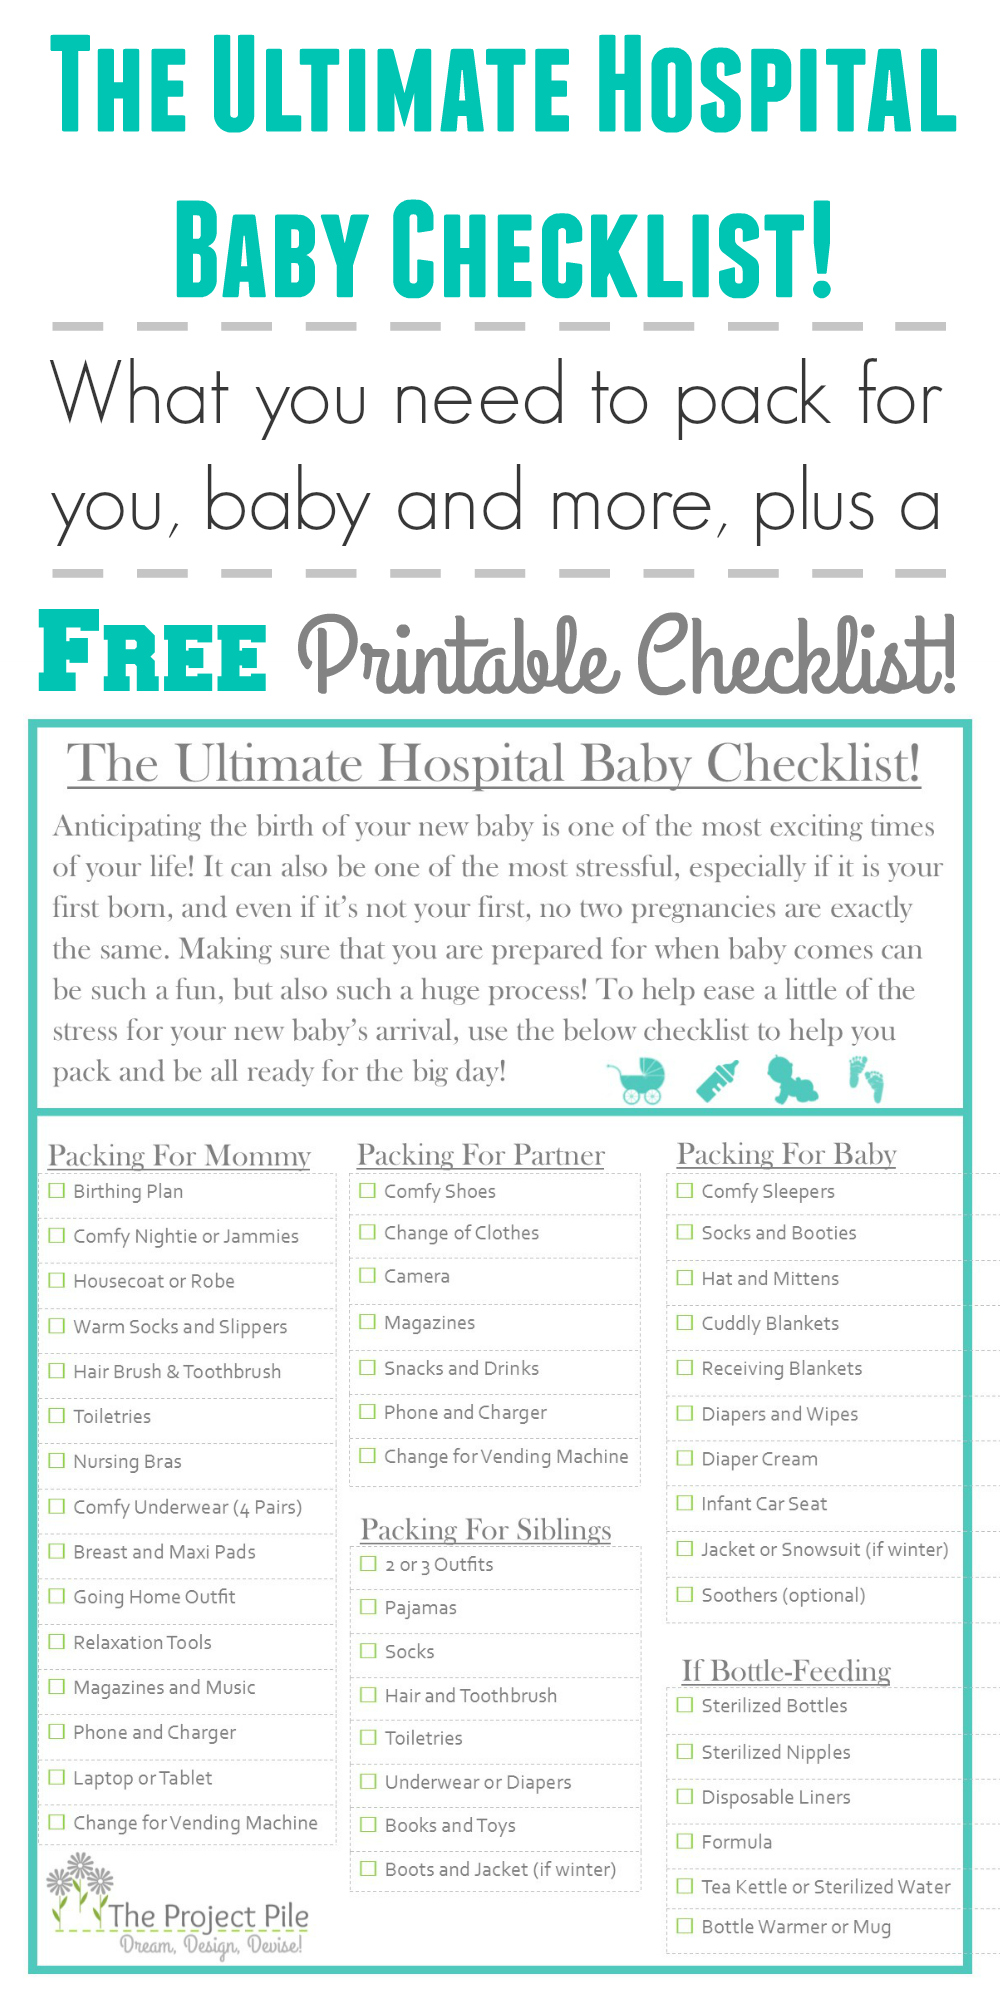 The Ultimate Hospital Baby Checklist! - TheProjectPile ...